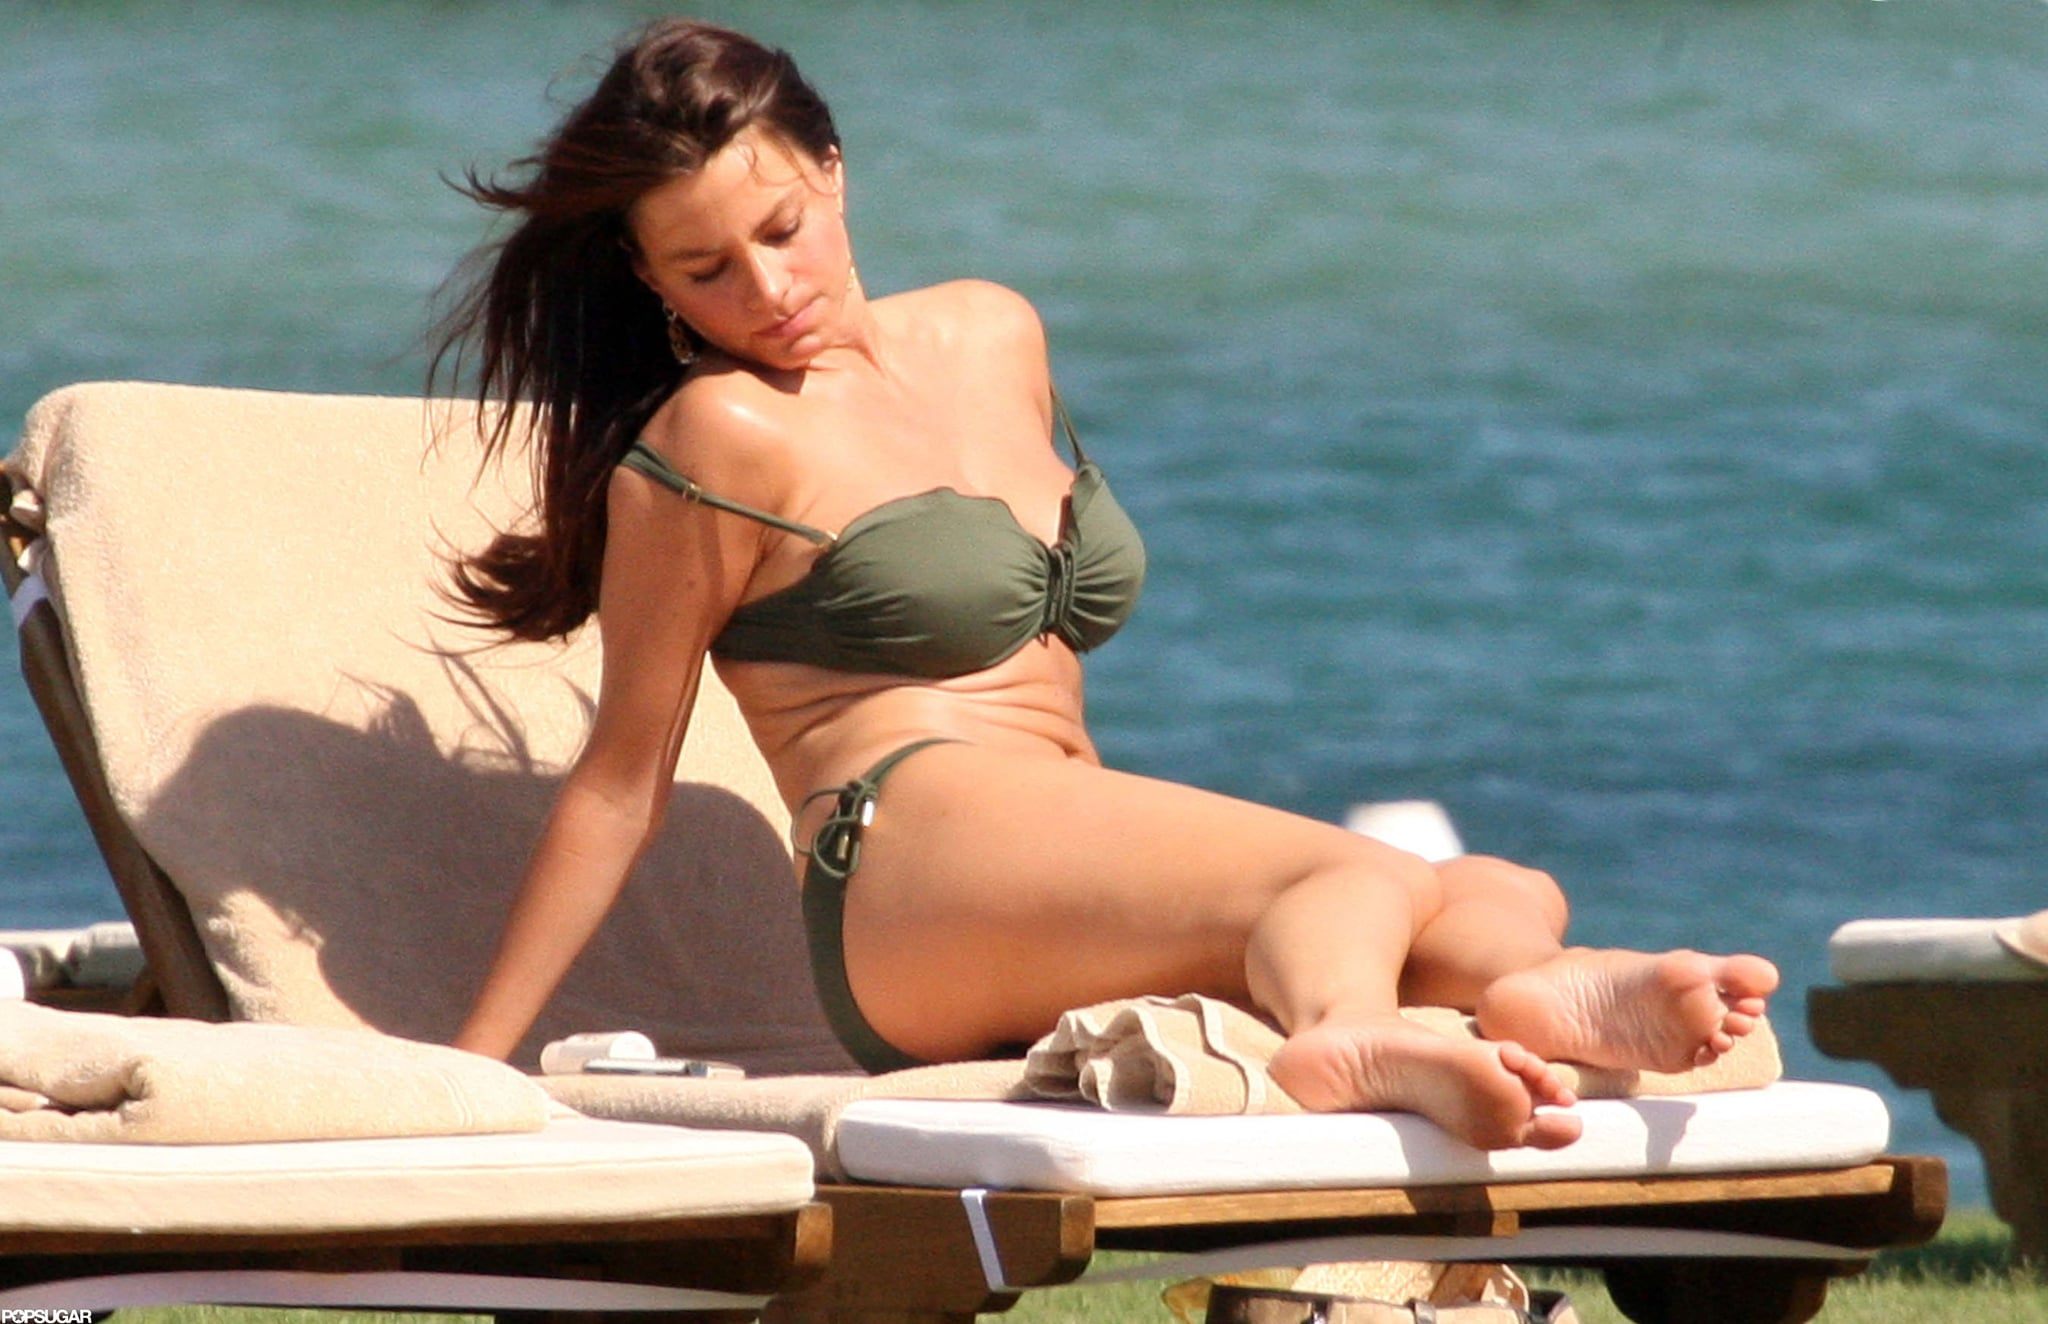 She soaked up the sun in a suit in Italy in July 2010.